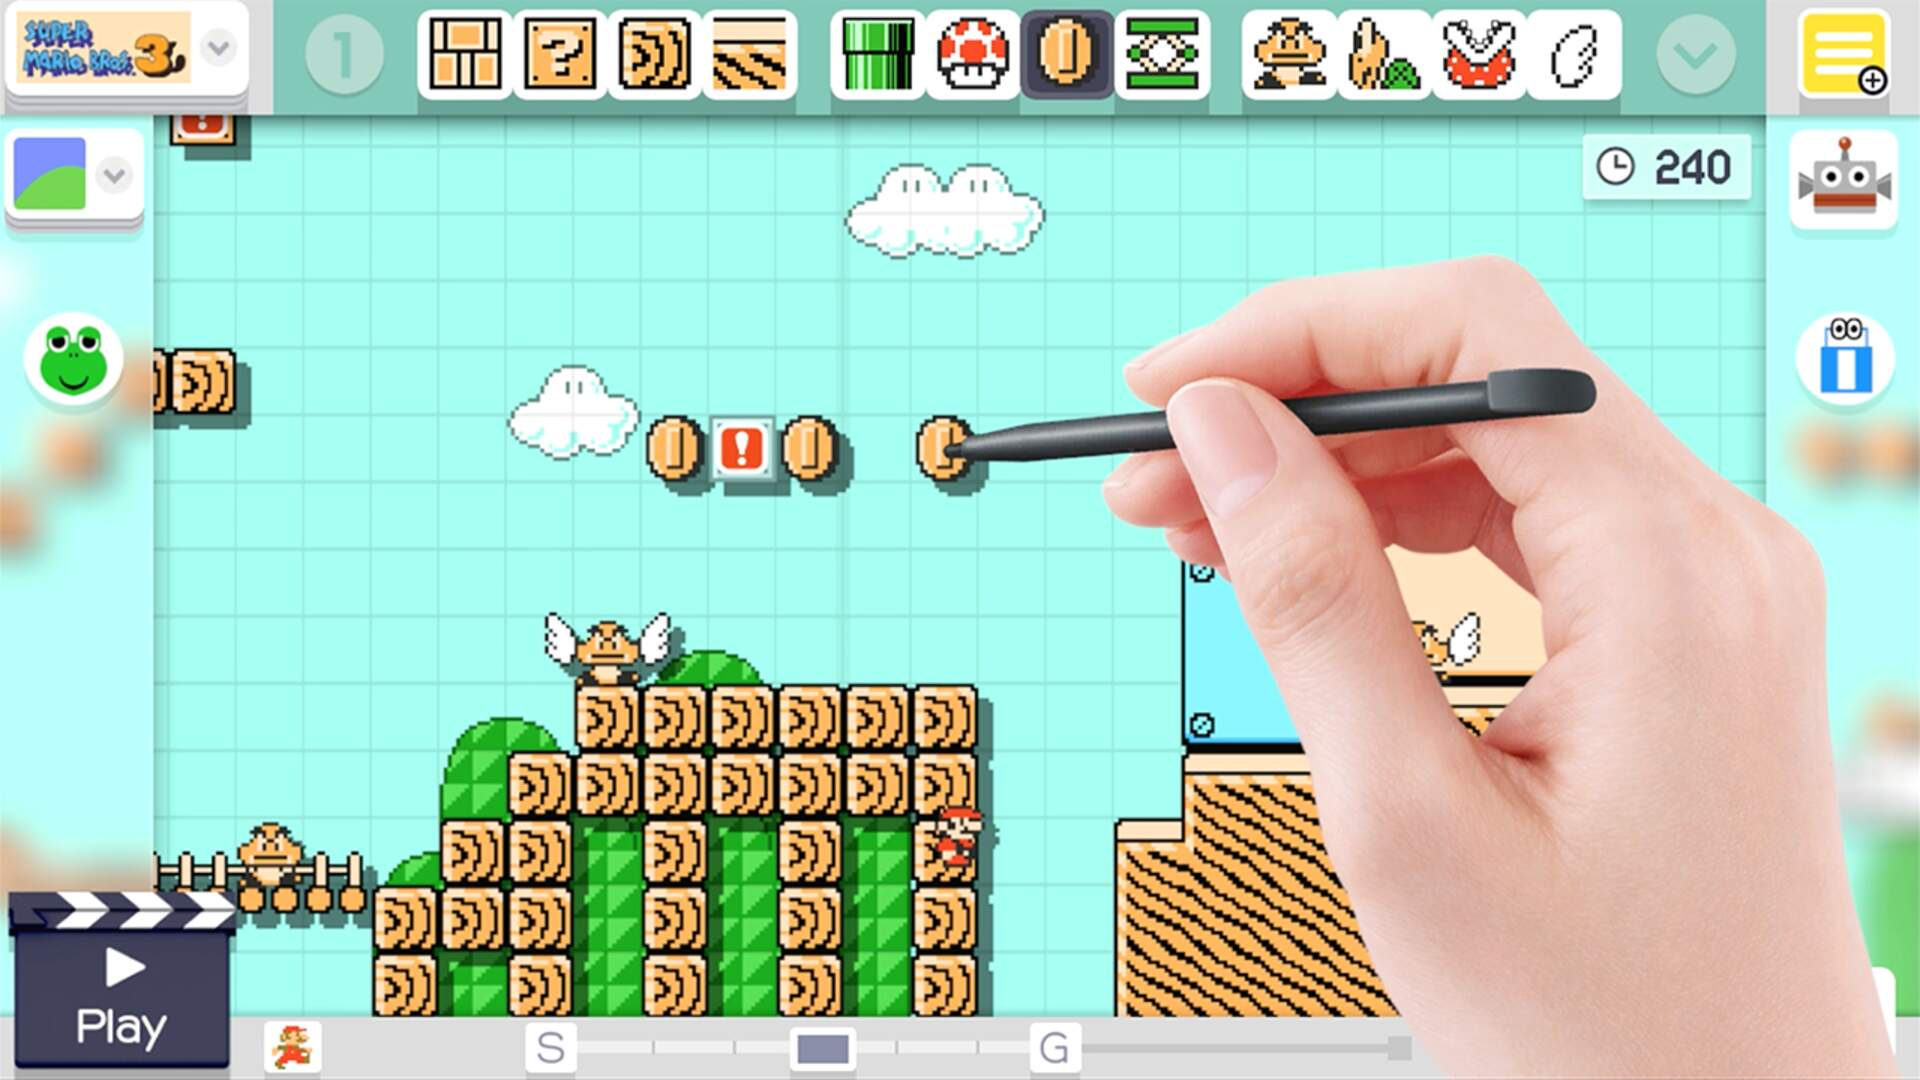 Super Mario Maker Support on Wii U is Coming to an End Next Year